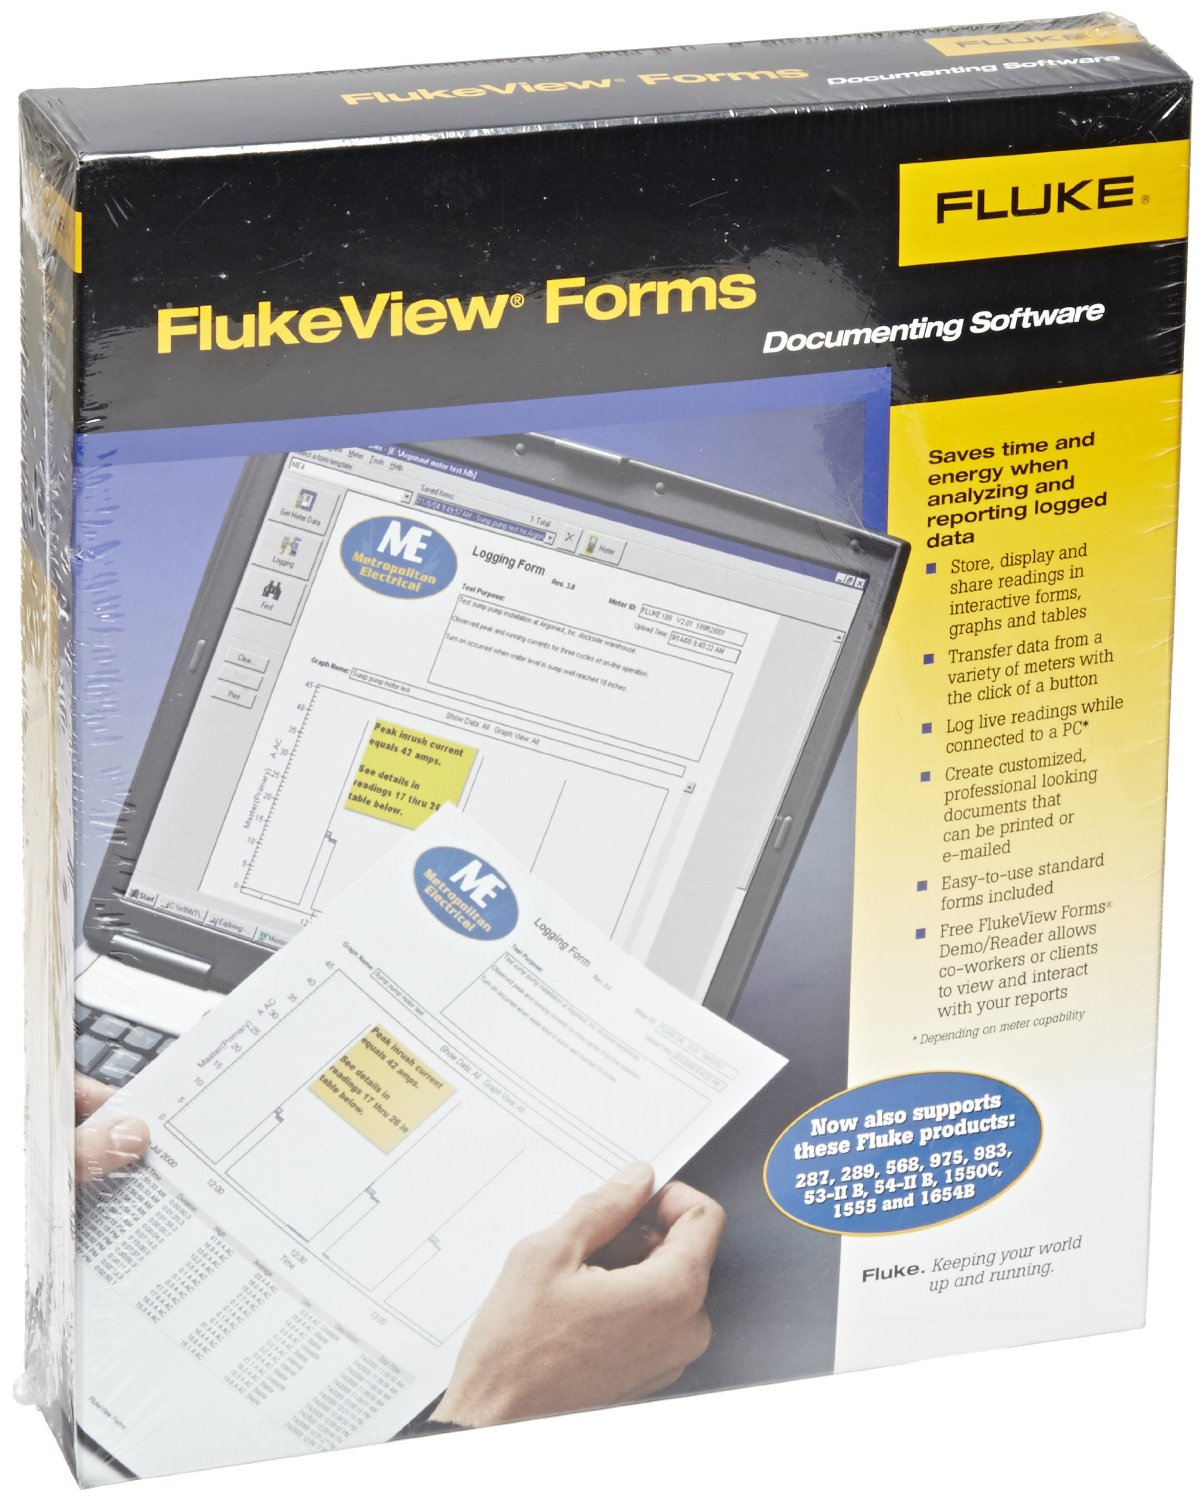 FLUKE FVF-Basic - FlukeView Forms Basic+IR Cable (189;287;289;789;1550B)